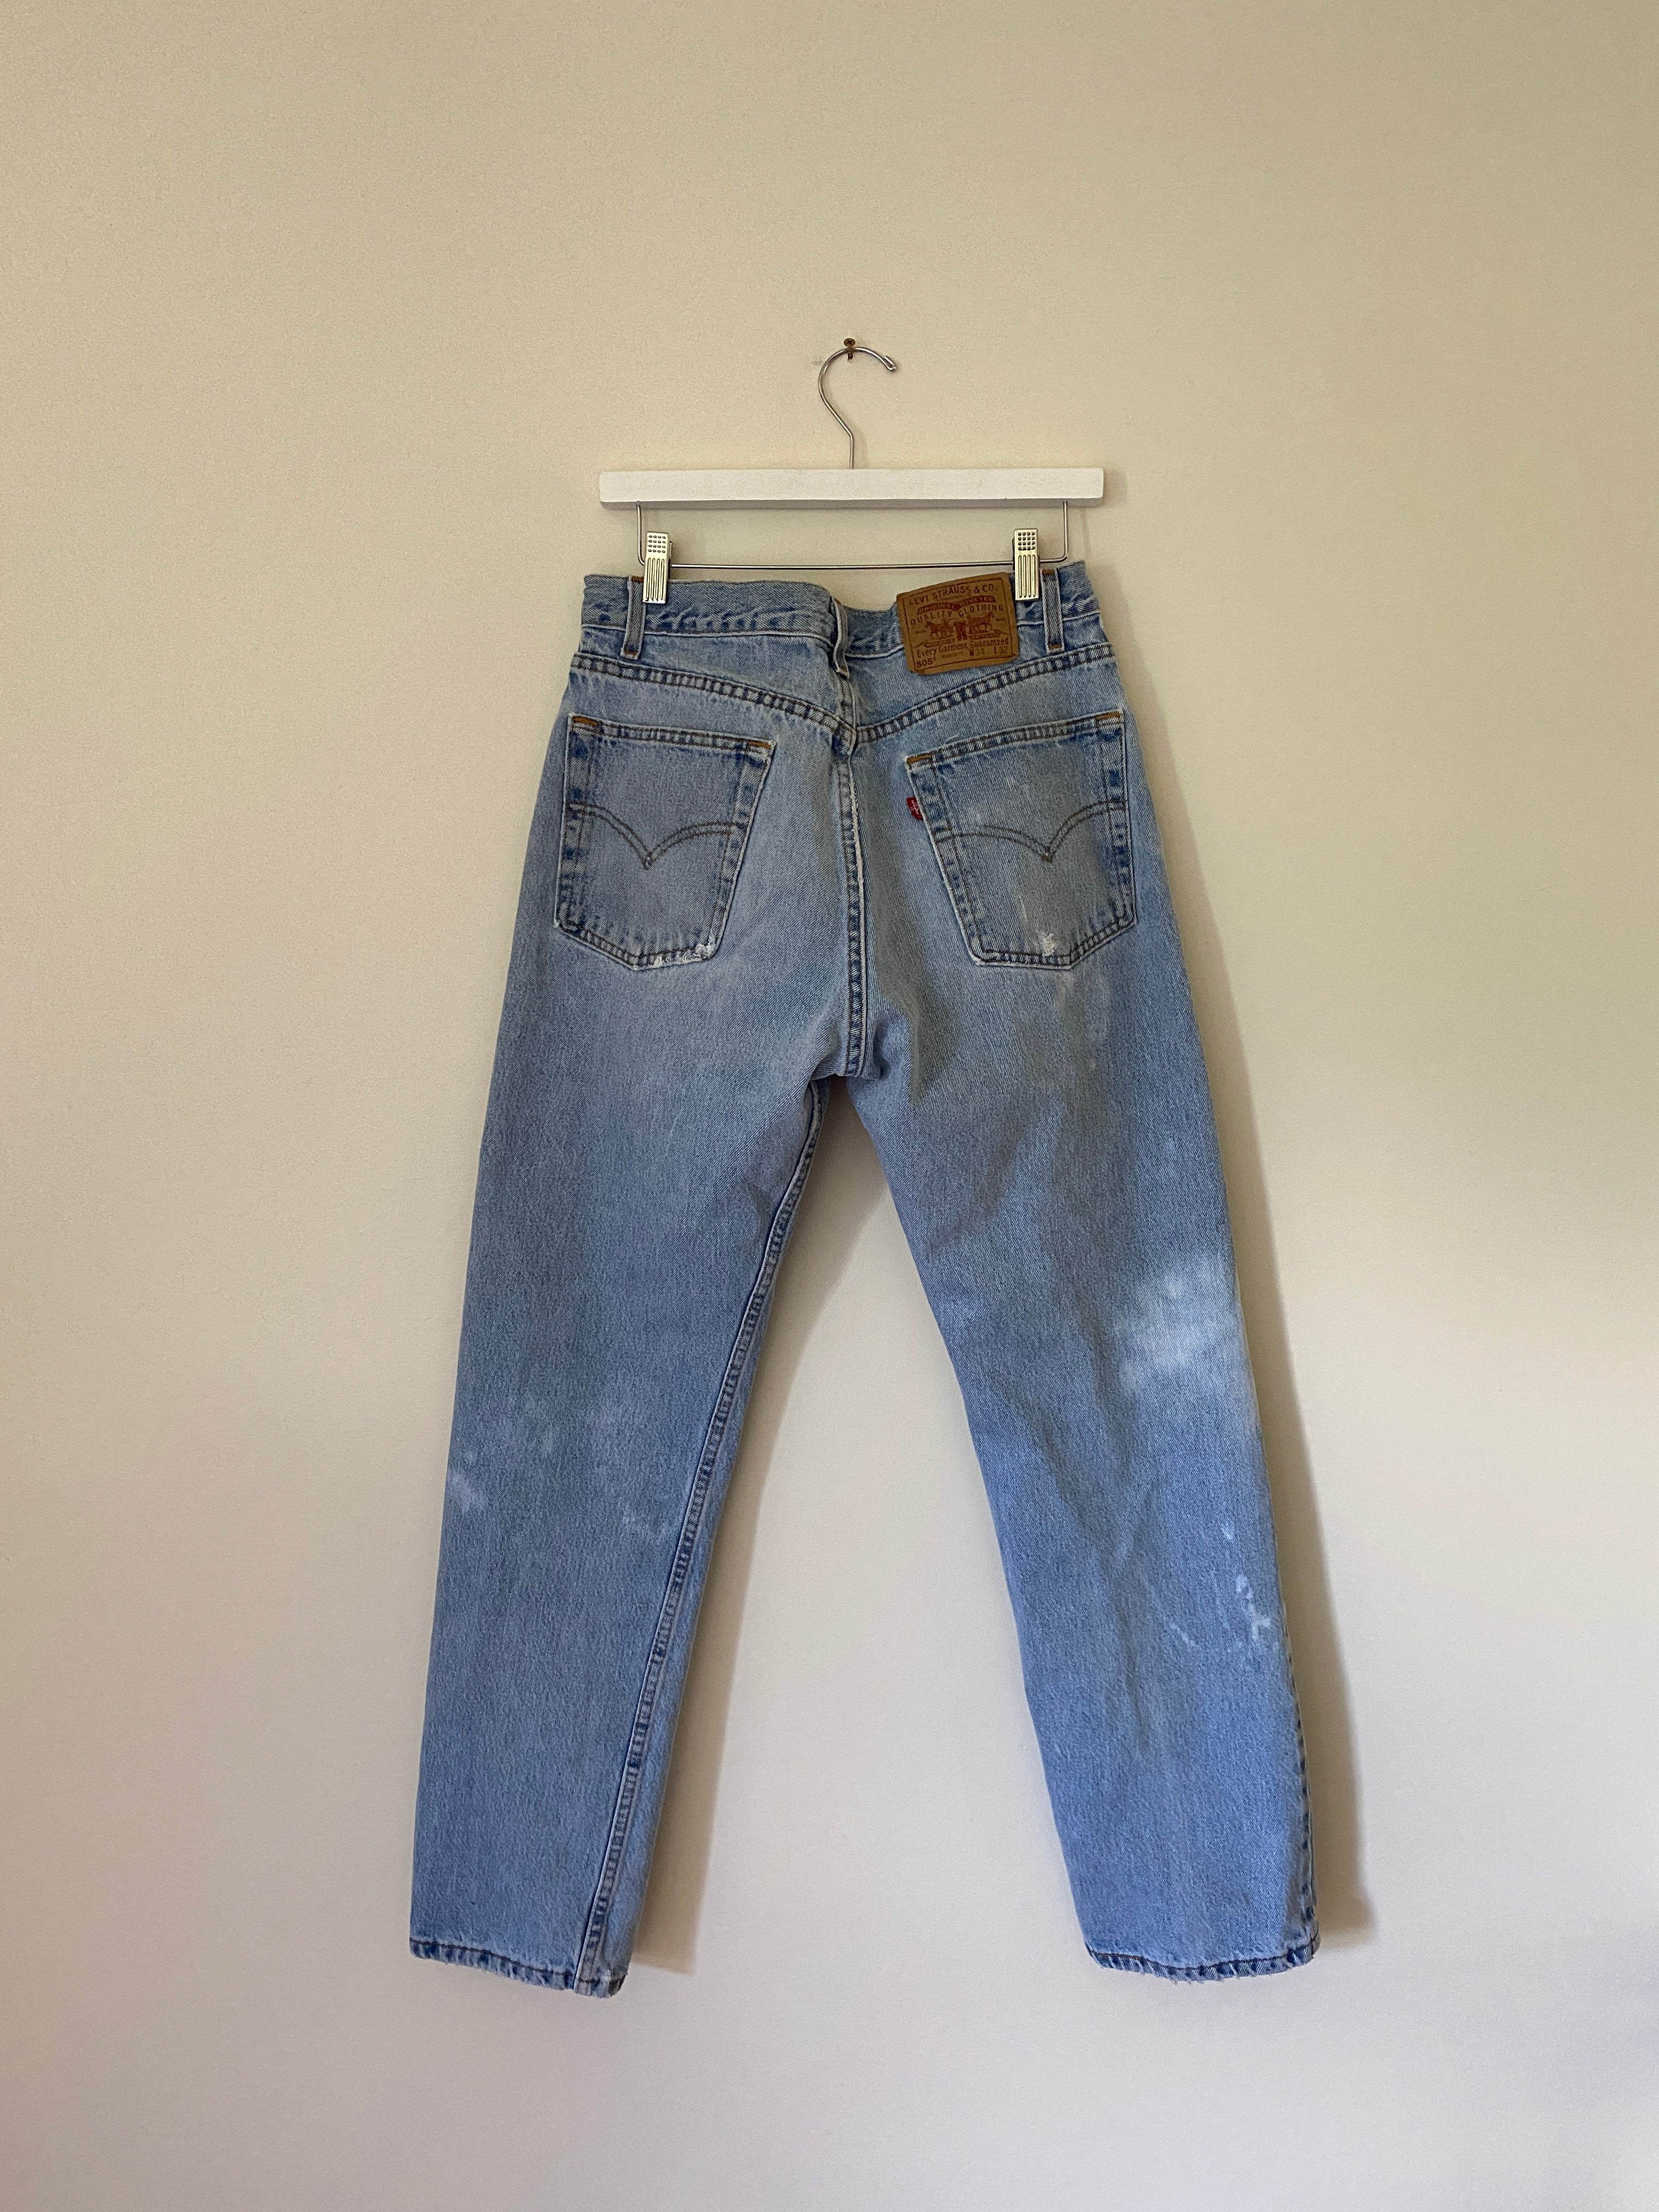 1990's Levi's 505 USA Bleached Jeans (31 x 31)